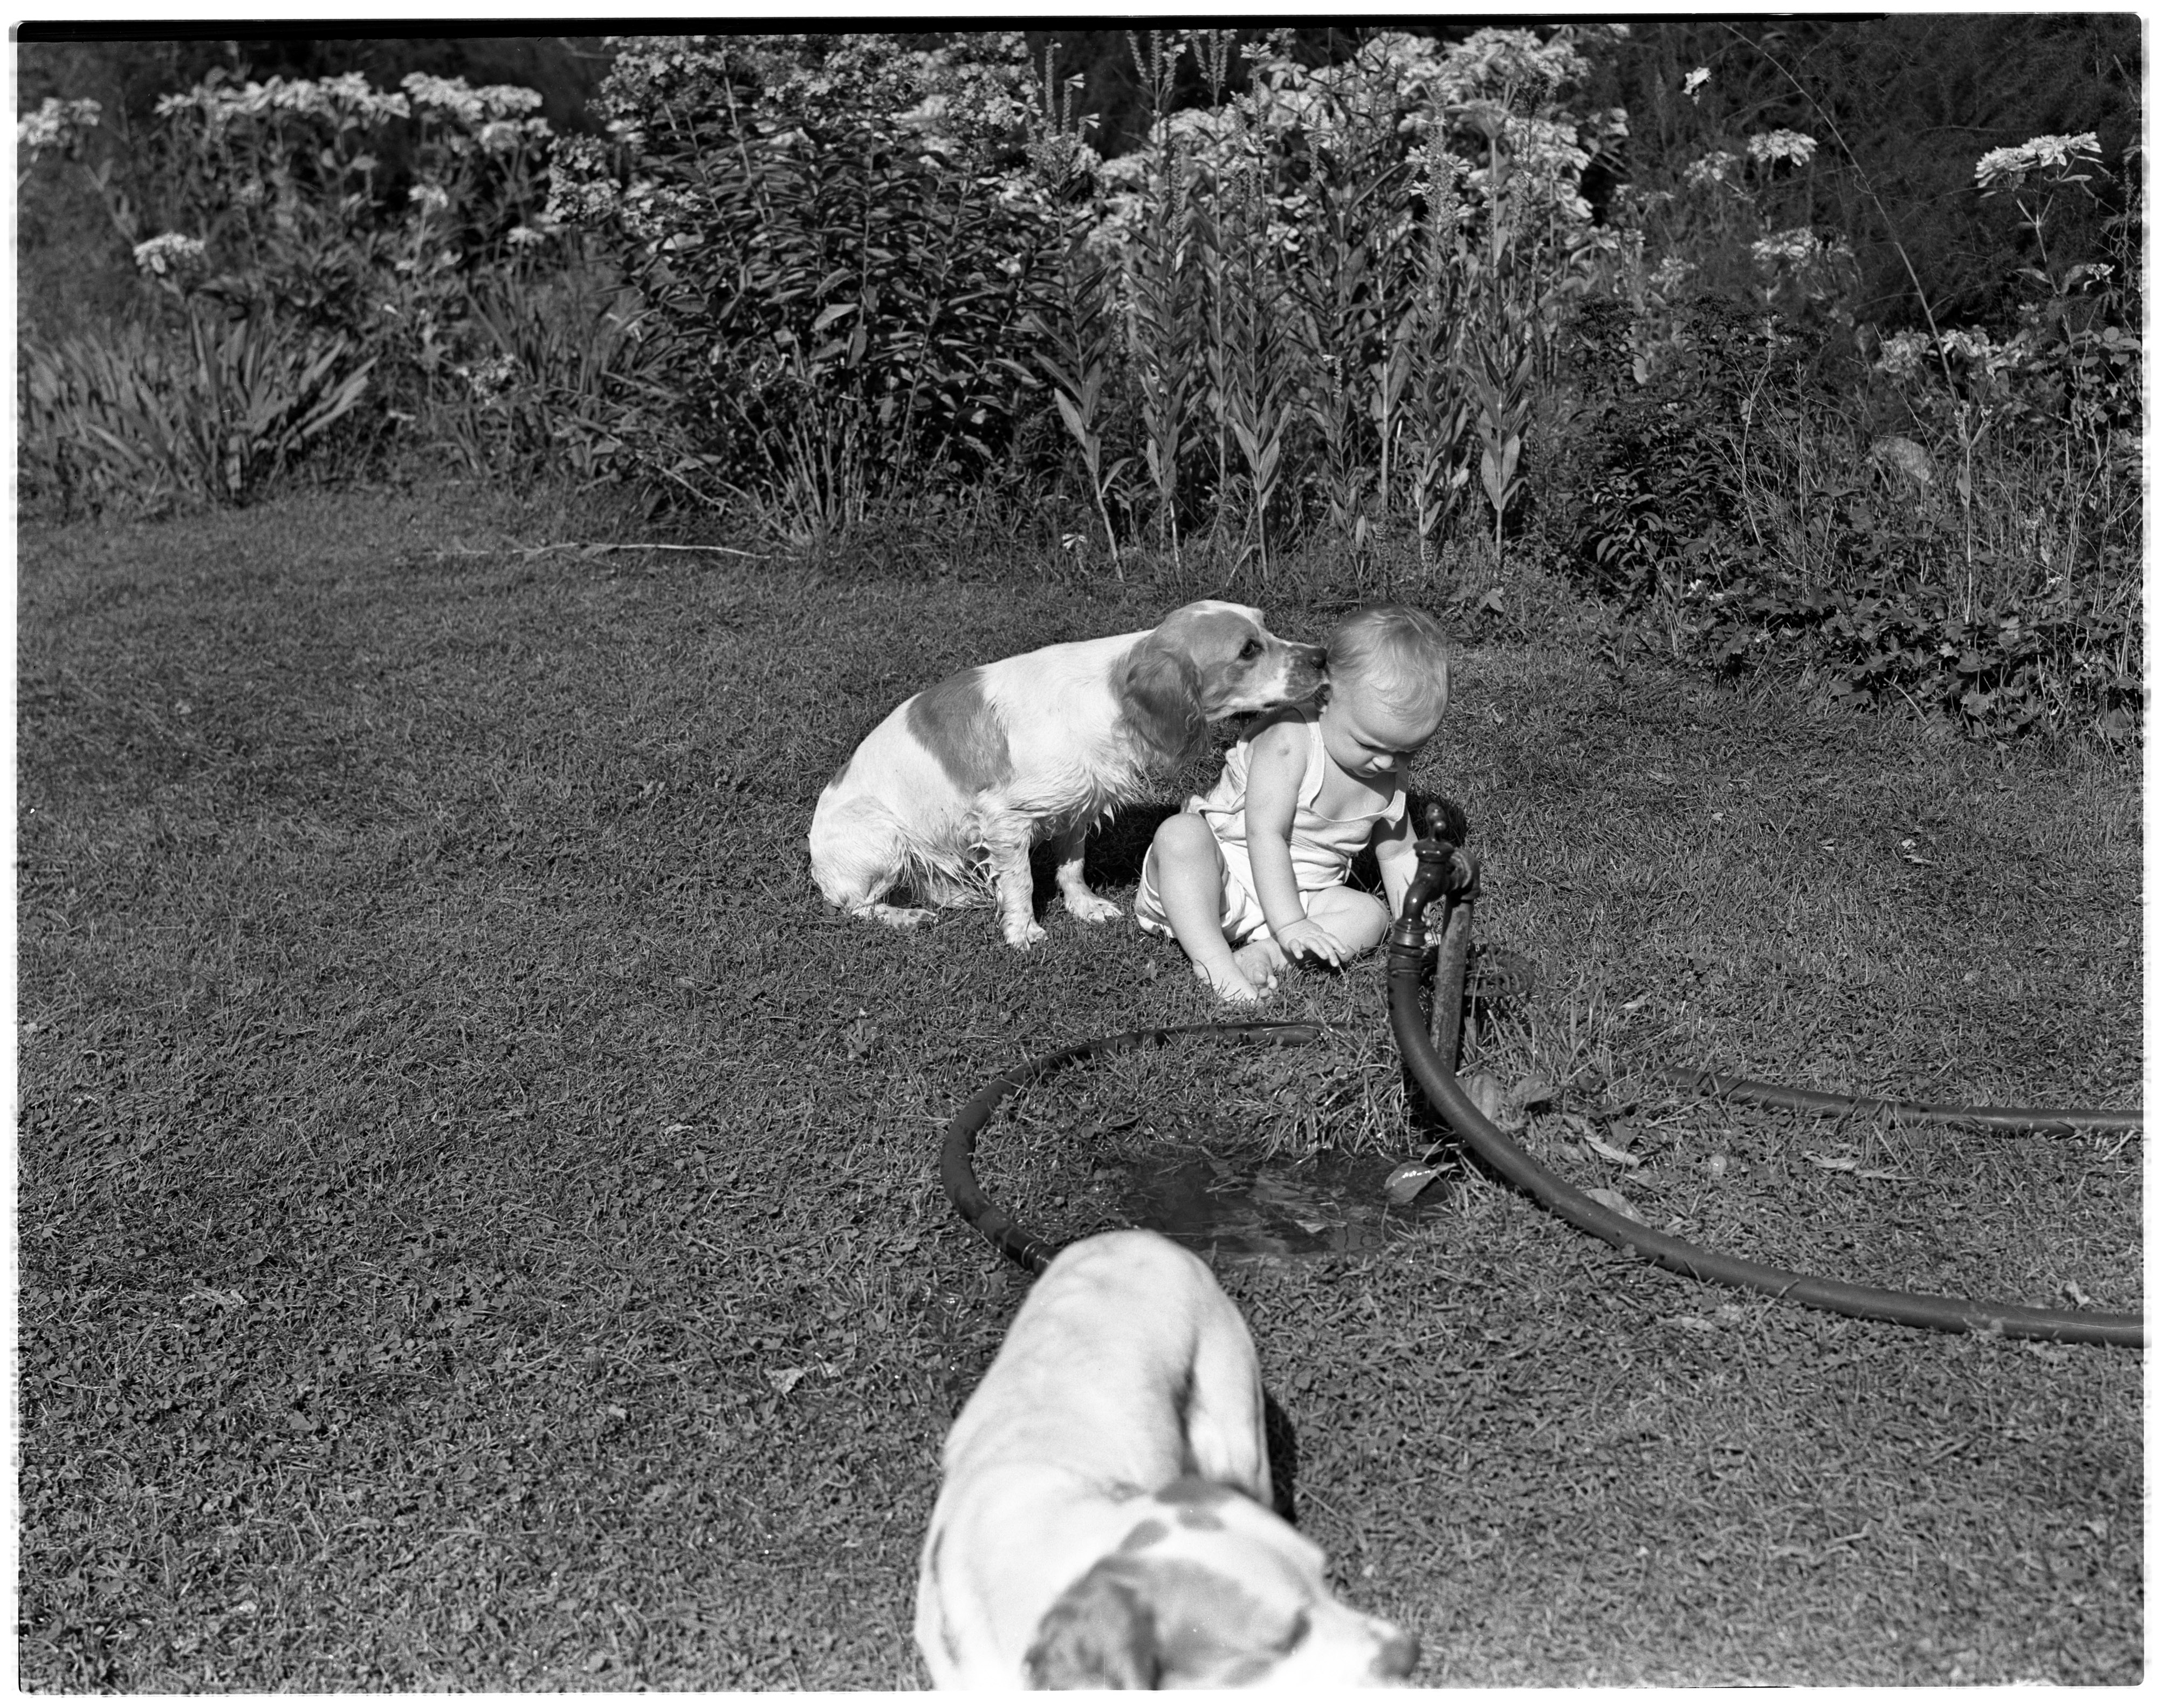 Dogs and Baby on a Lawn, Milford image